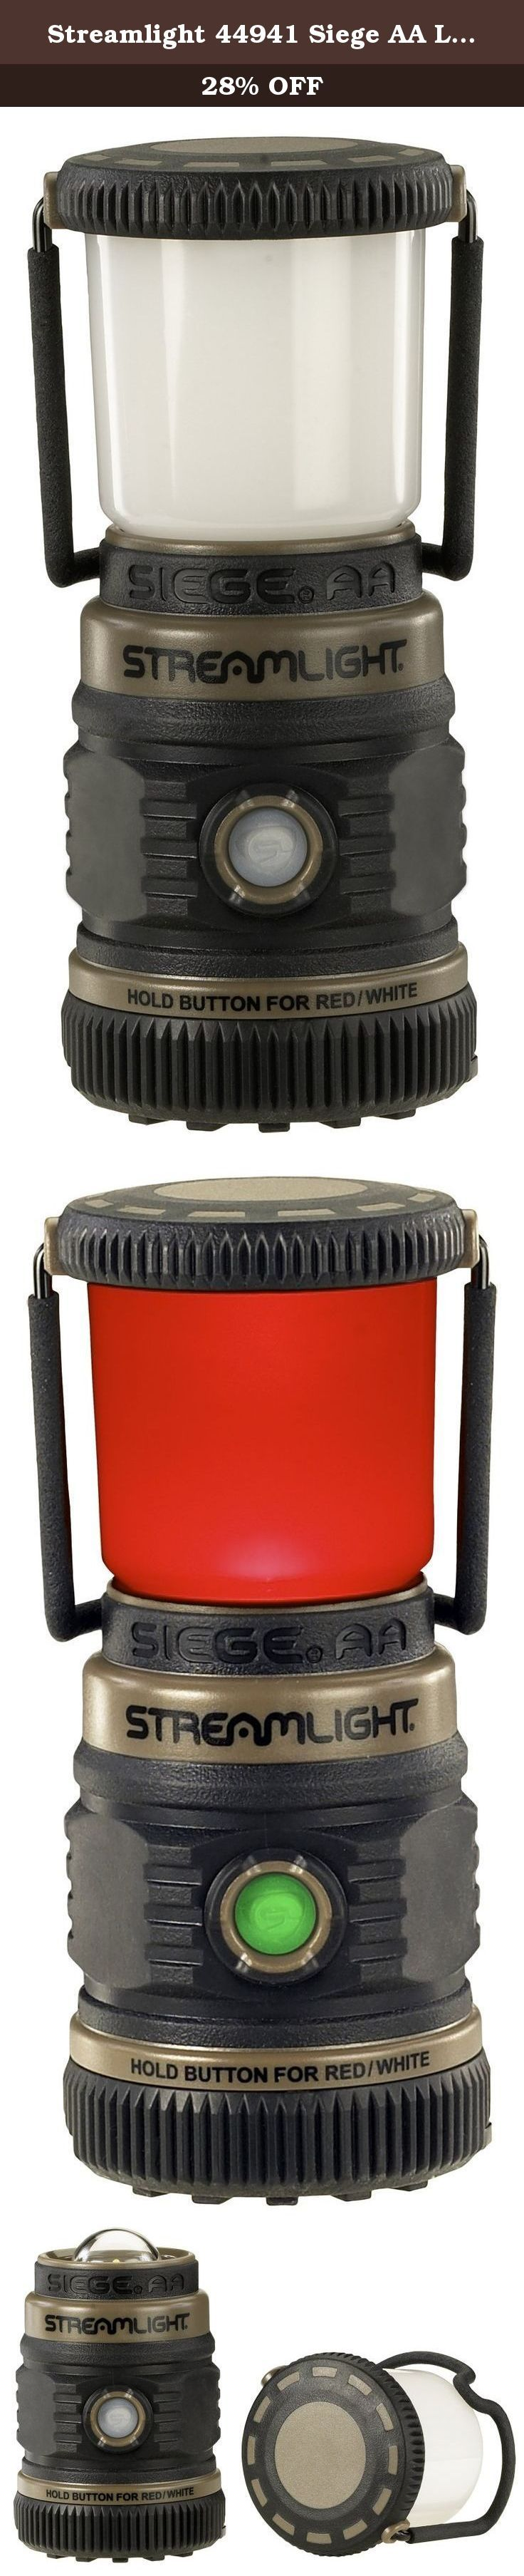 Streamlight 44941 Siege AA Lantern. A rugged, compact lantern for when you need a lot of light without it taking up a lot of space. The Siege AA uses affordable, easy -to-find AA alkaline batteries to provide a 360 degrees of soft, even light that illuminates a large area. The Siege AA offers multiple modes, white C4 LED and red LED (2 red lights) for night vision preservation. Batteries not included.